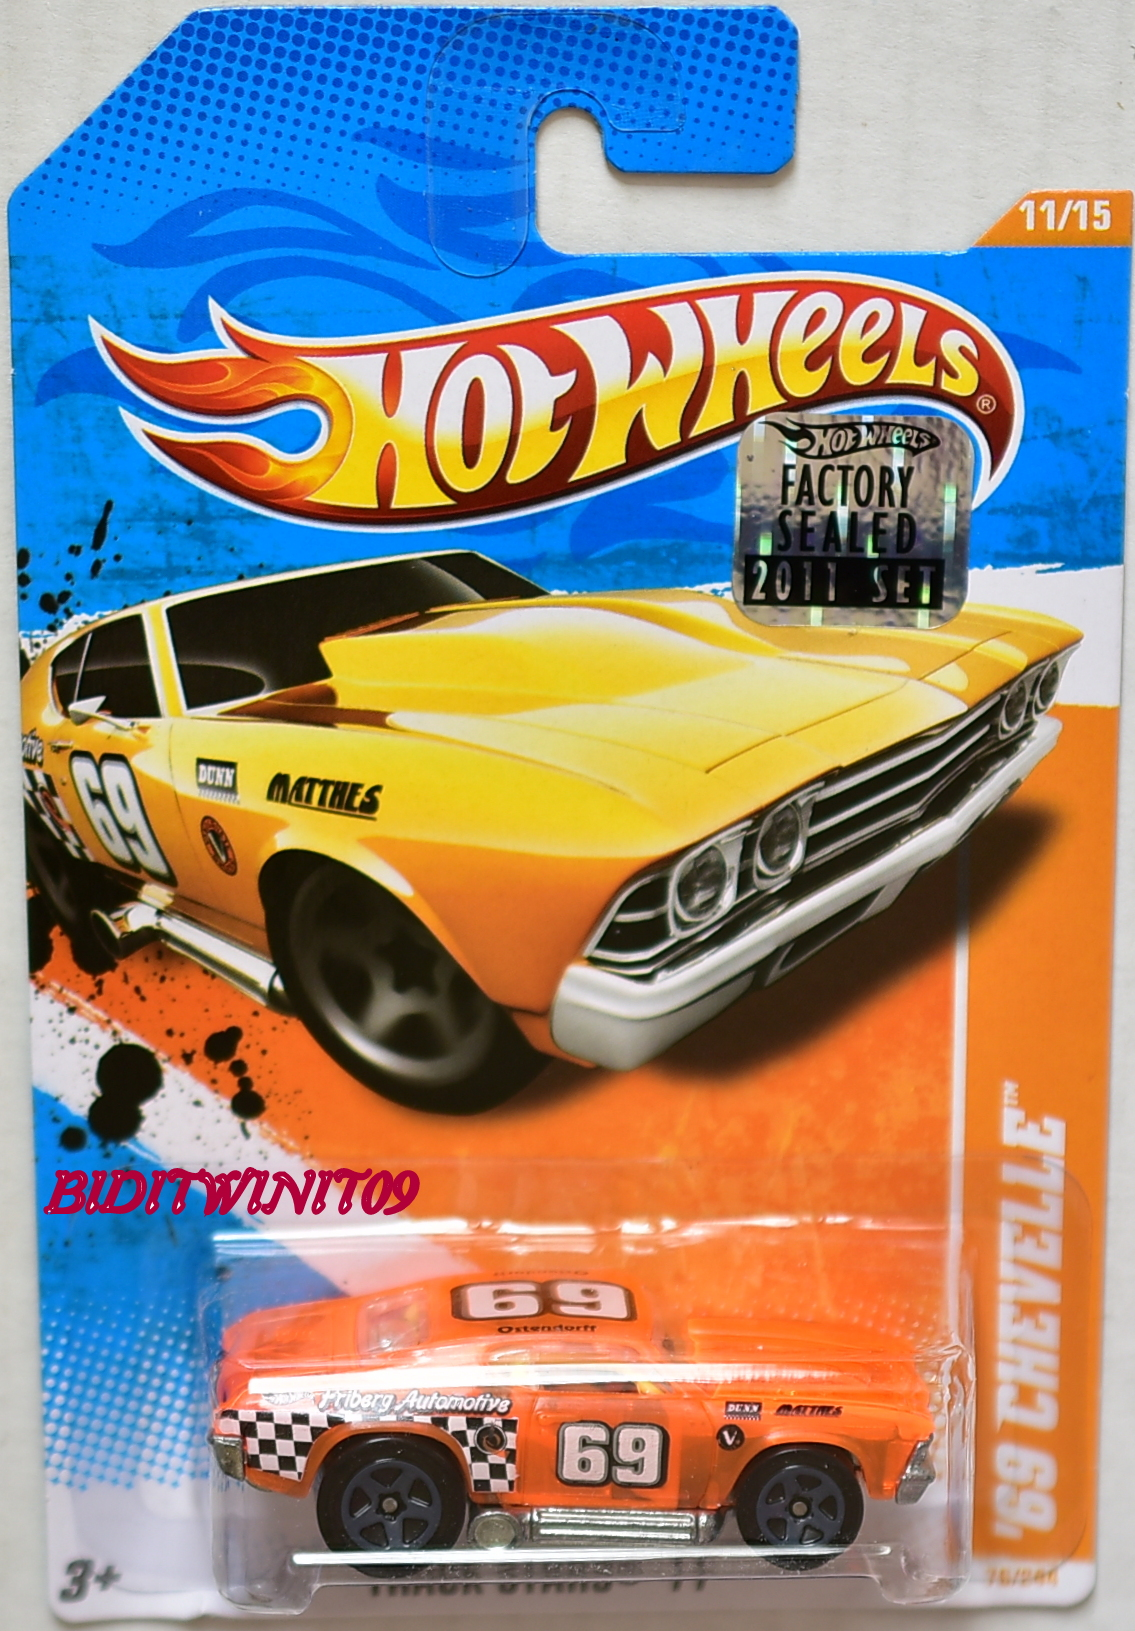 HOT WHEELS 2011 TRACK STARS '69 CHEVETTE #11/15 ORANGE FACTORY SEALED E+